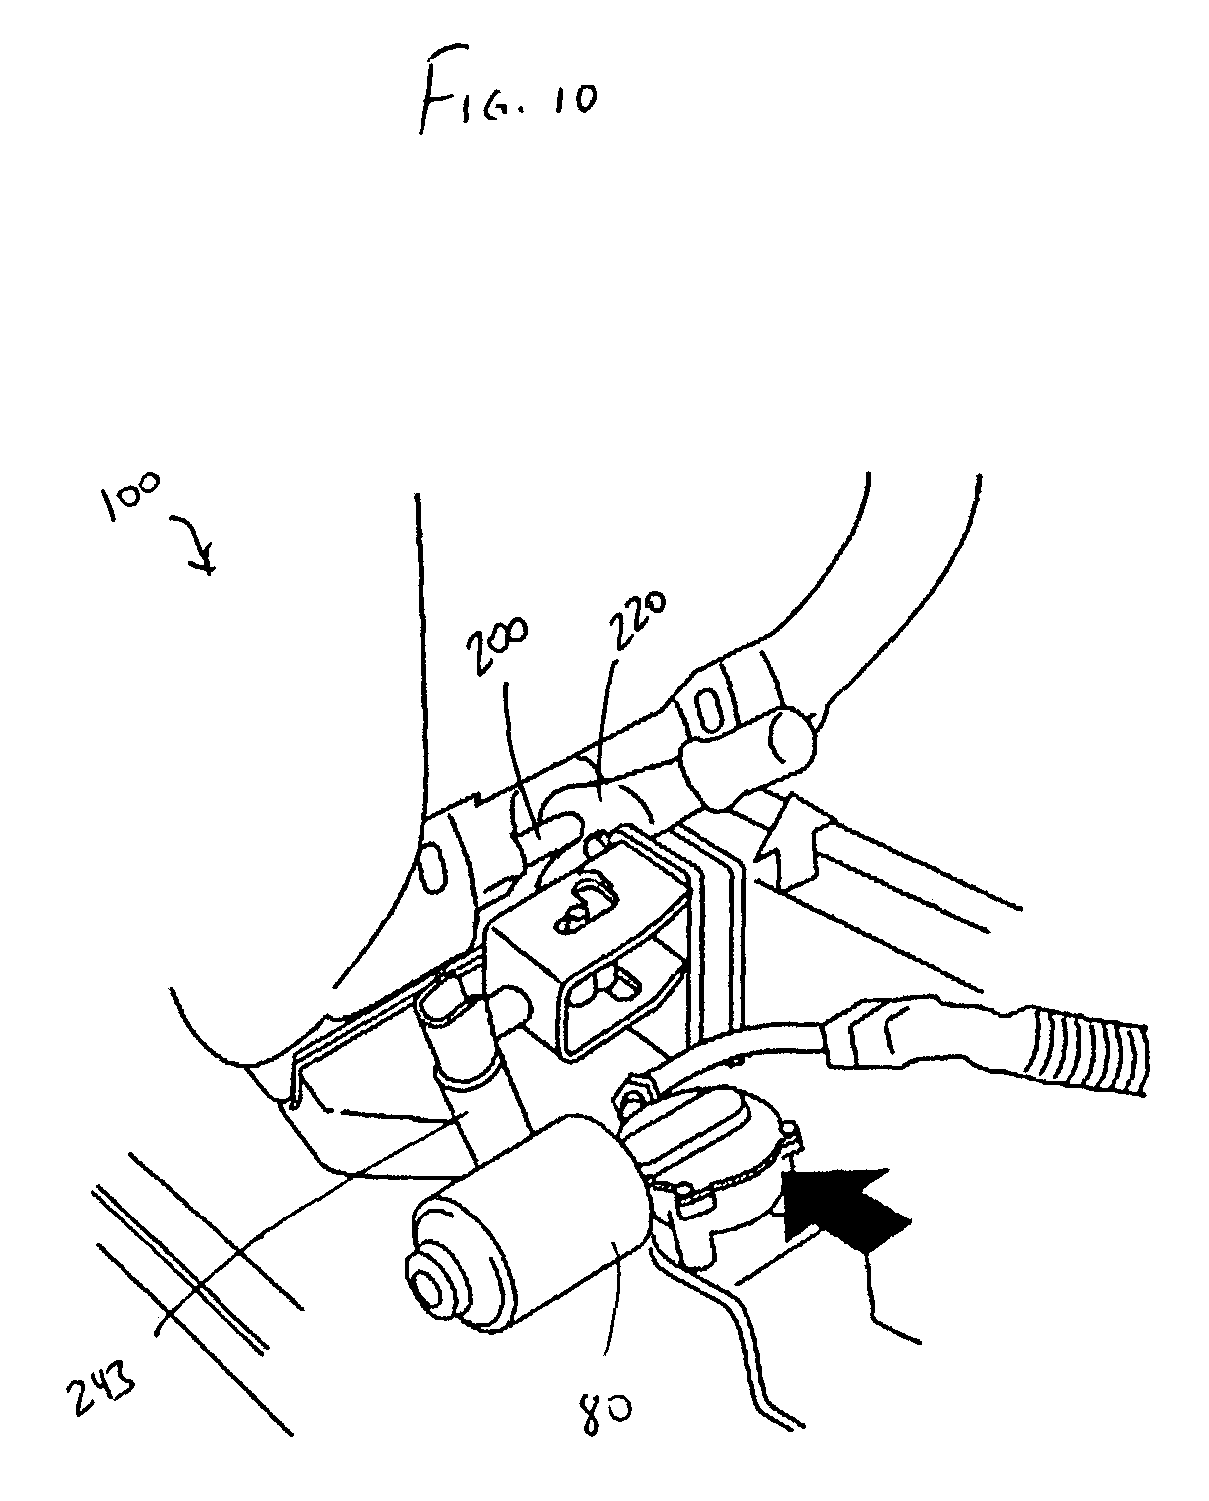 all terrain vehicles coloring pages - photo#21